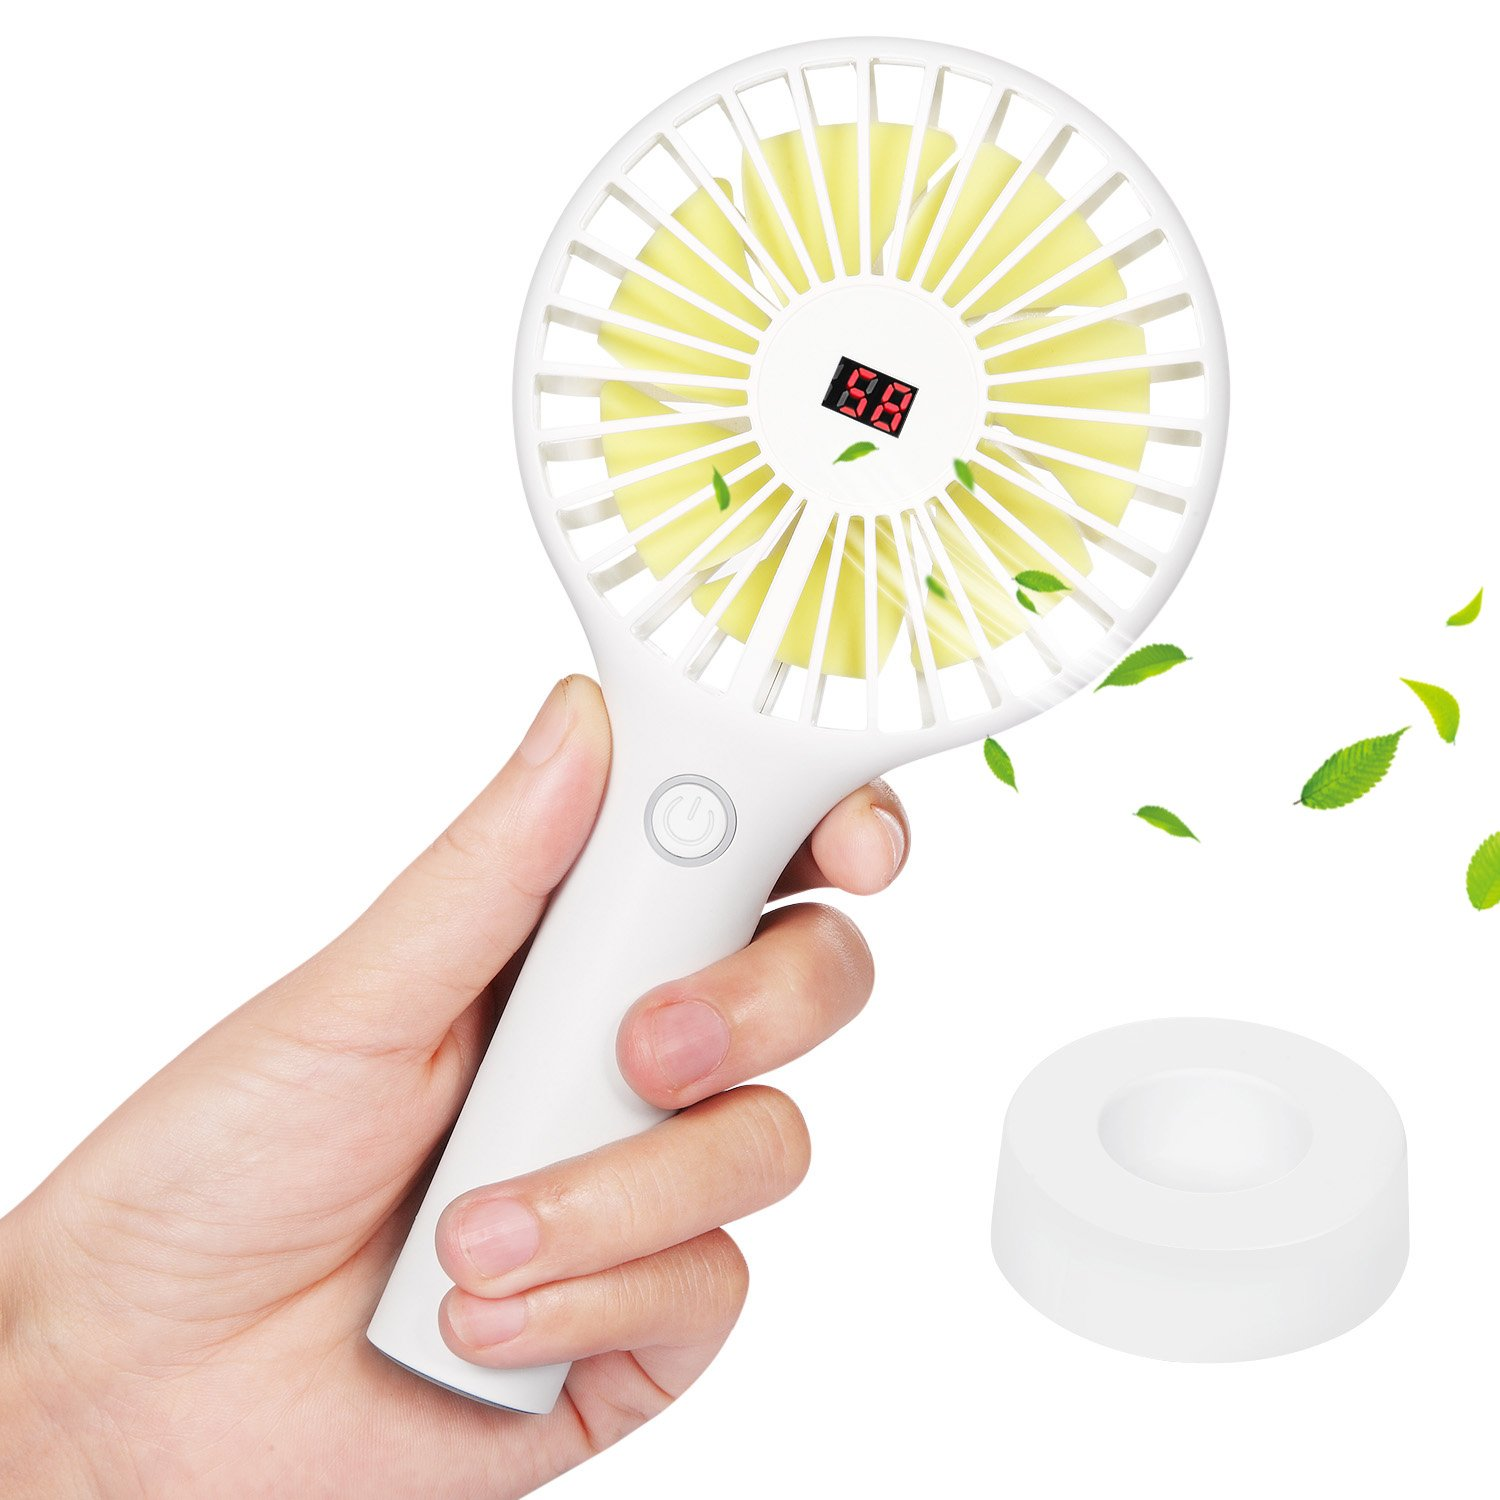 Skyreat Portable Mini Personal Battery Handheld Fan LCD Dispaly Design, Rechargeable USB 2500mAh Battery Operated Hand Fan Strong Wind Travel Home Office